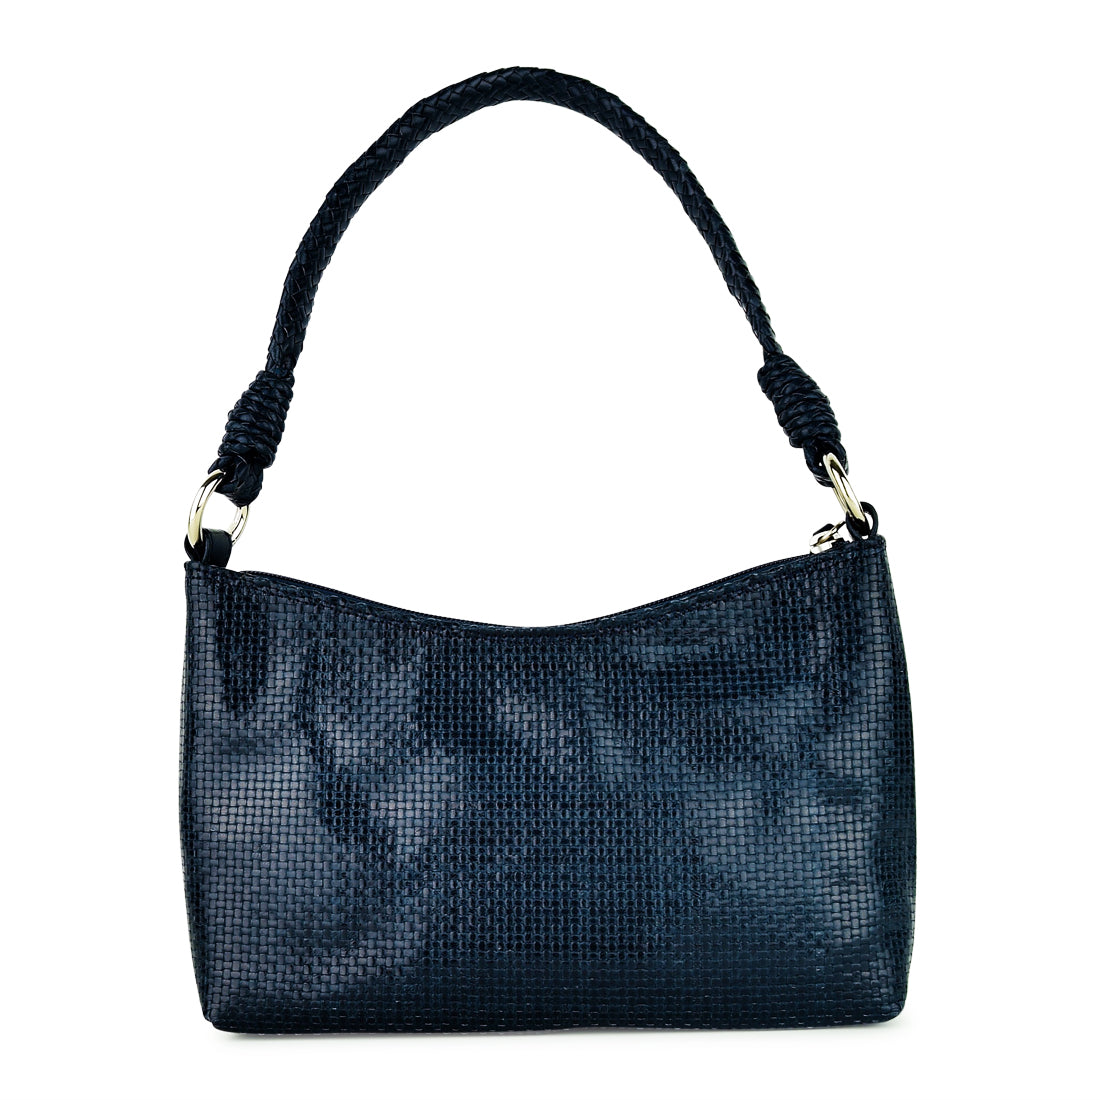 LG108J - Sasha Weave Leather Shoulder Bag Navy